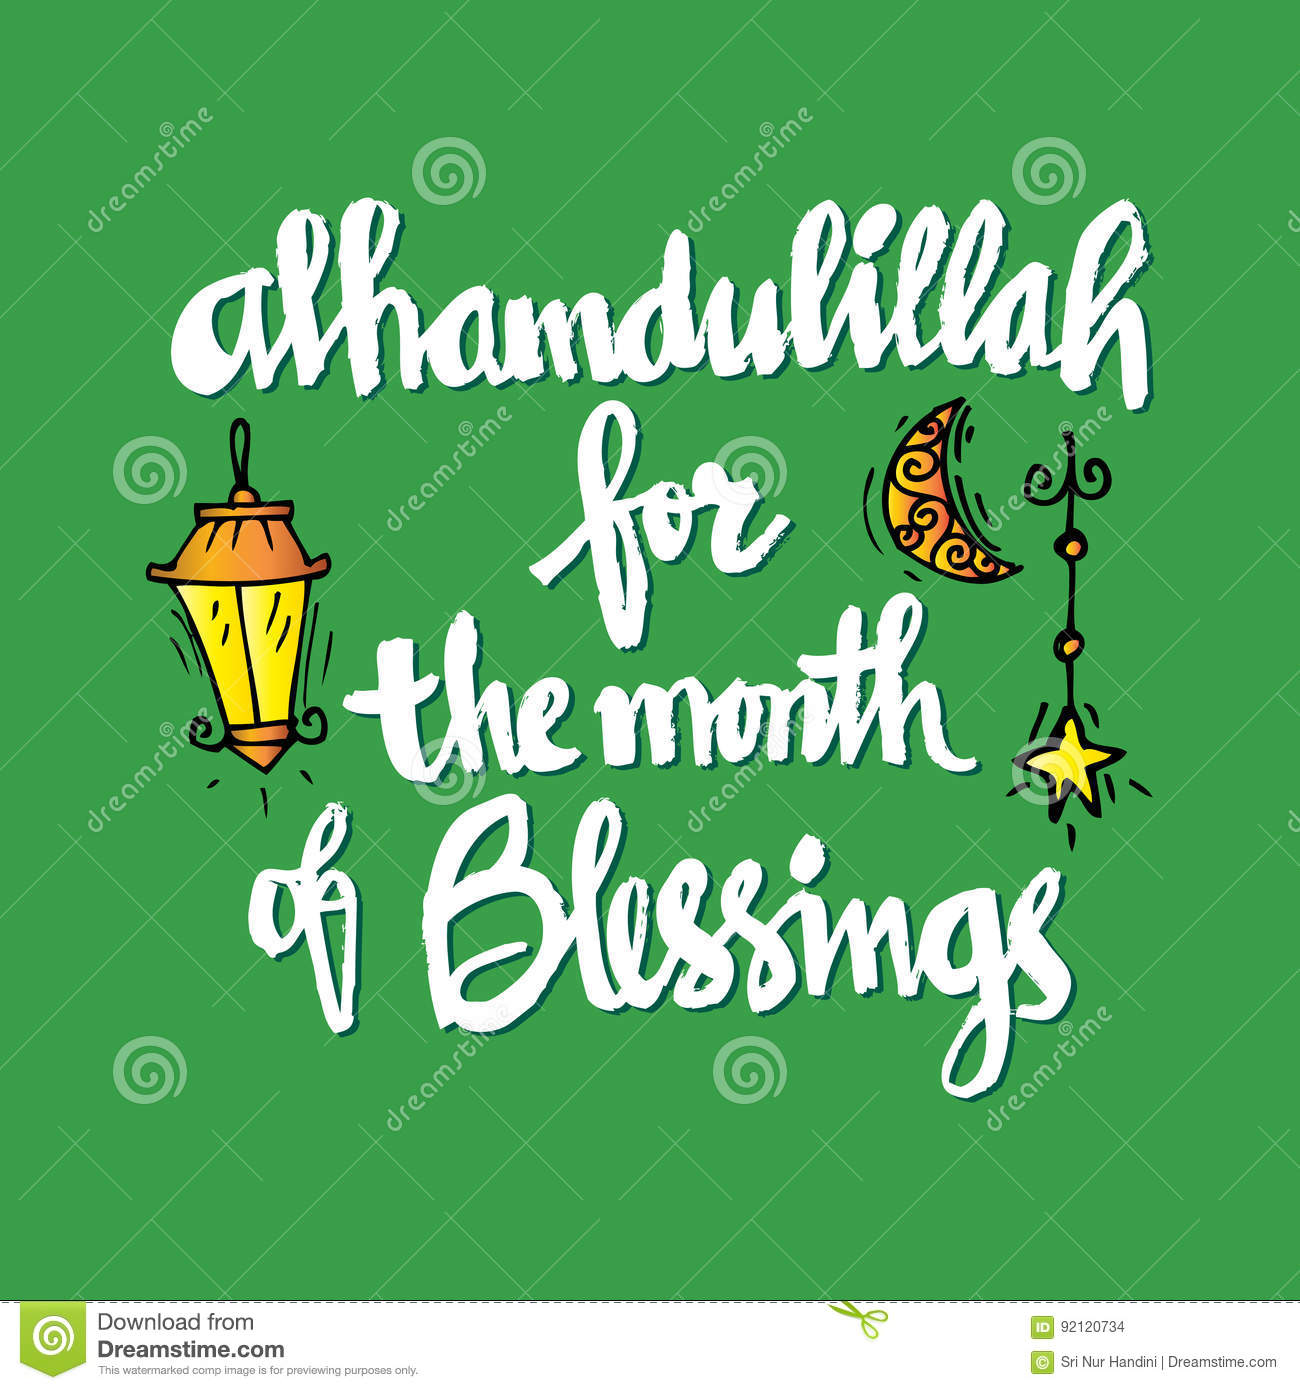 Alhamdulillah for the month of blessing stock illustration alhamdulillah for the month of blessing stock images altavistaventures Choice Image